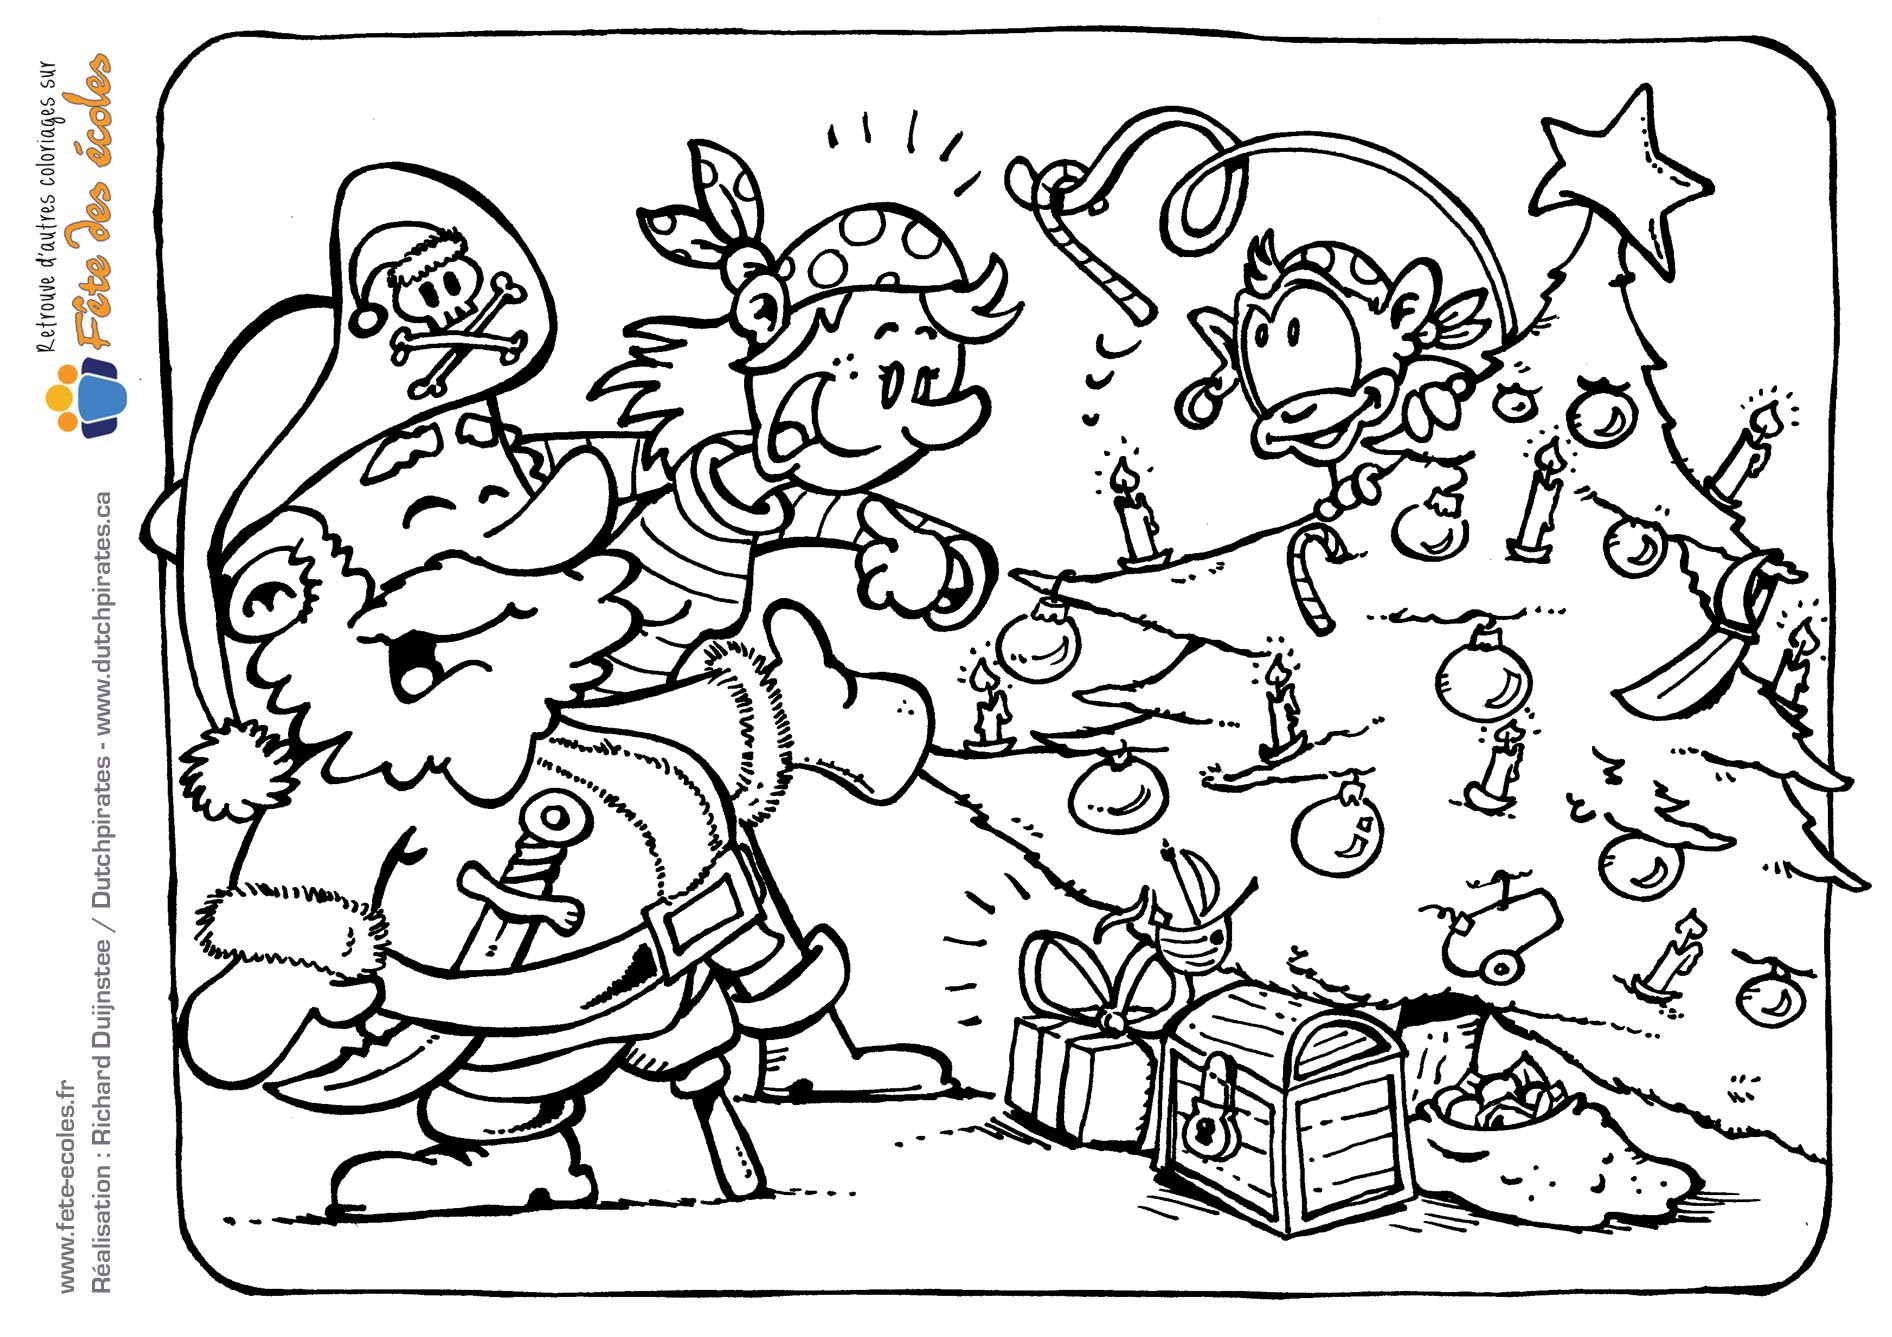 Coloriage de pirates qui célèbrent Noël de Dutchpirates - Richard Duijnstee